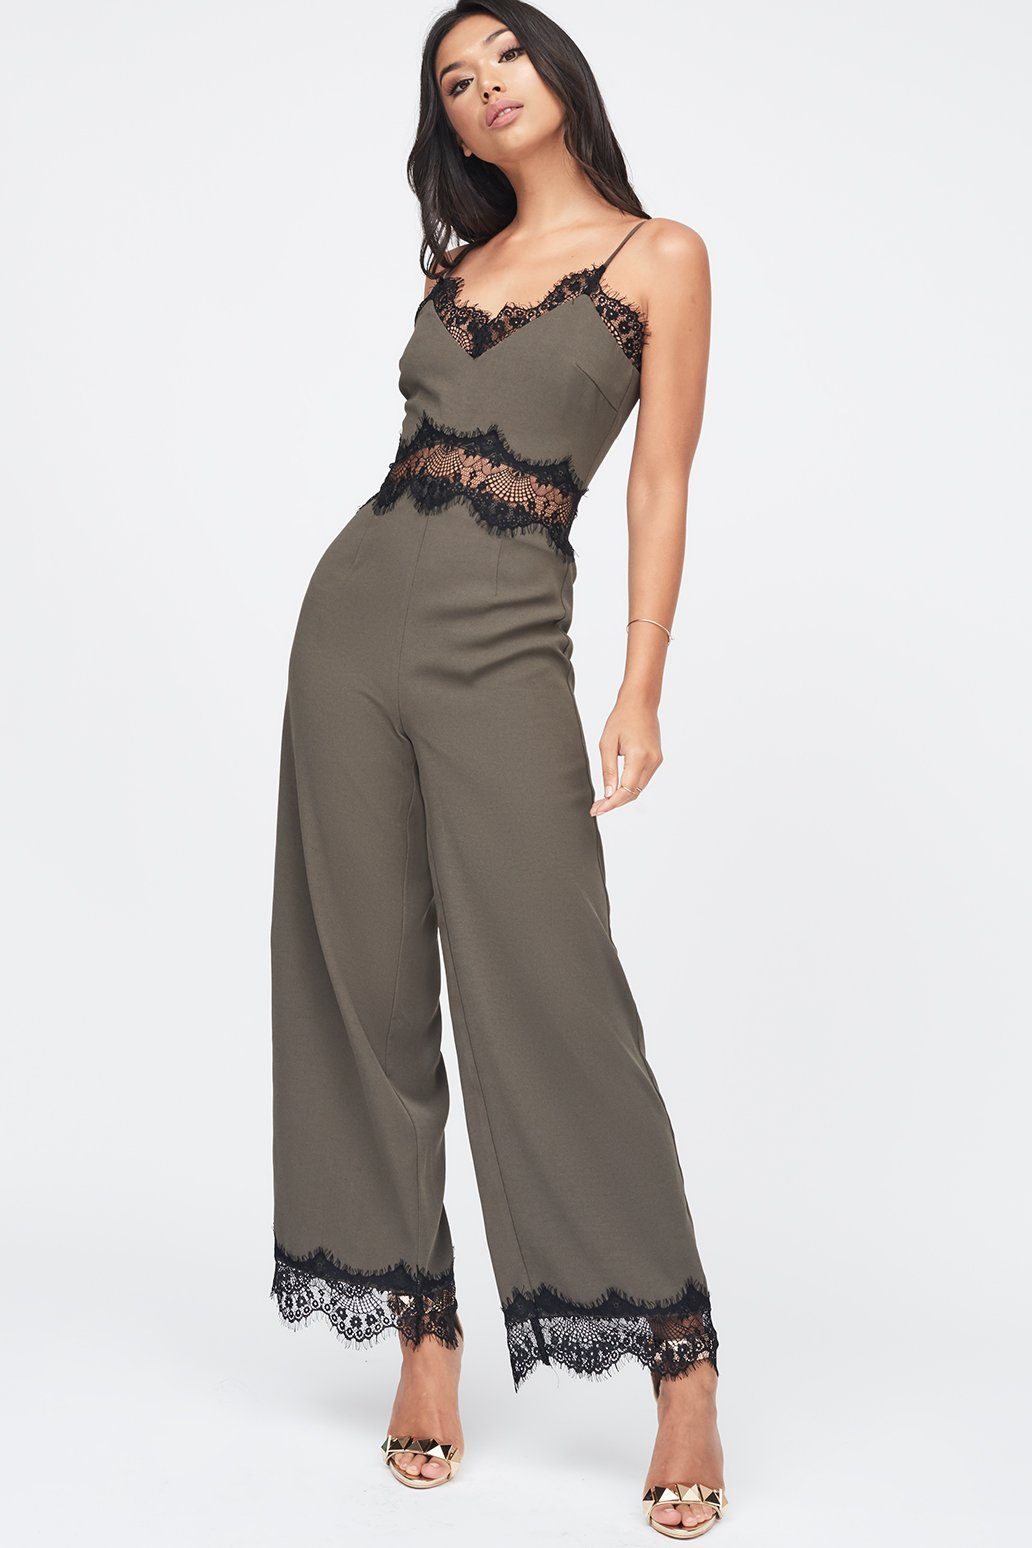 Lace Cami Jumpsuit in Khaki